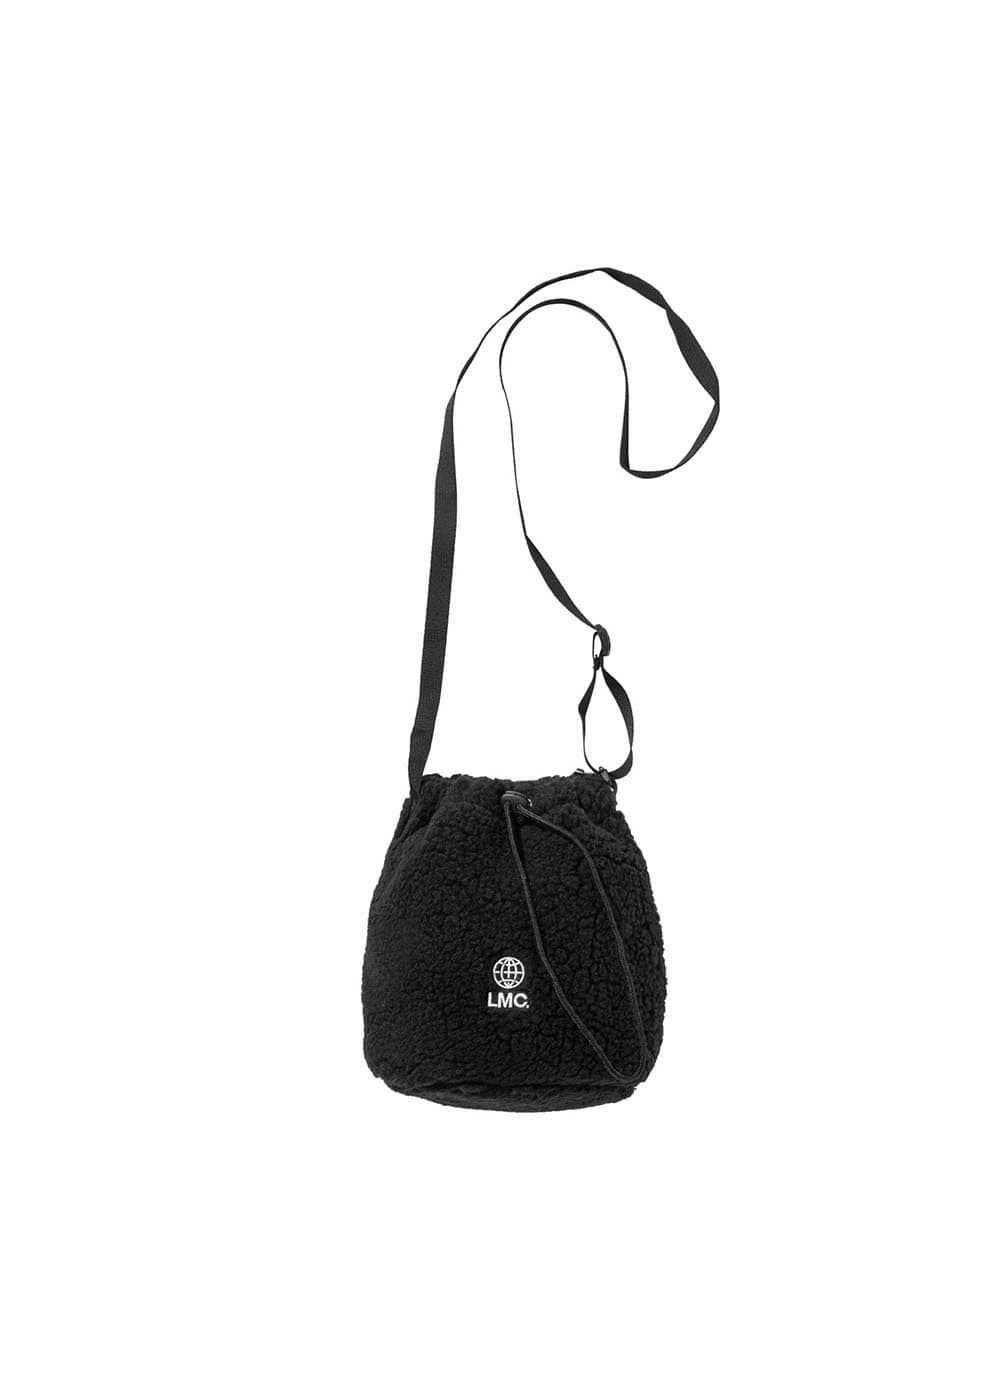 LMC BOA PERSONAL EFFECTS BAG black